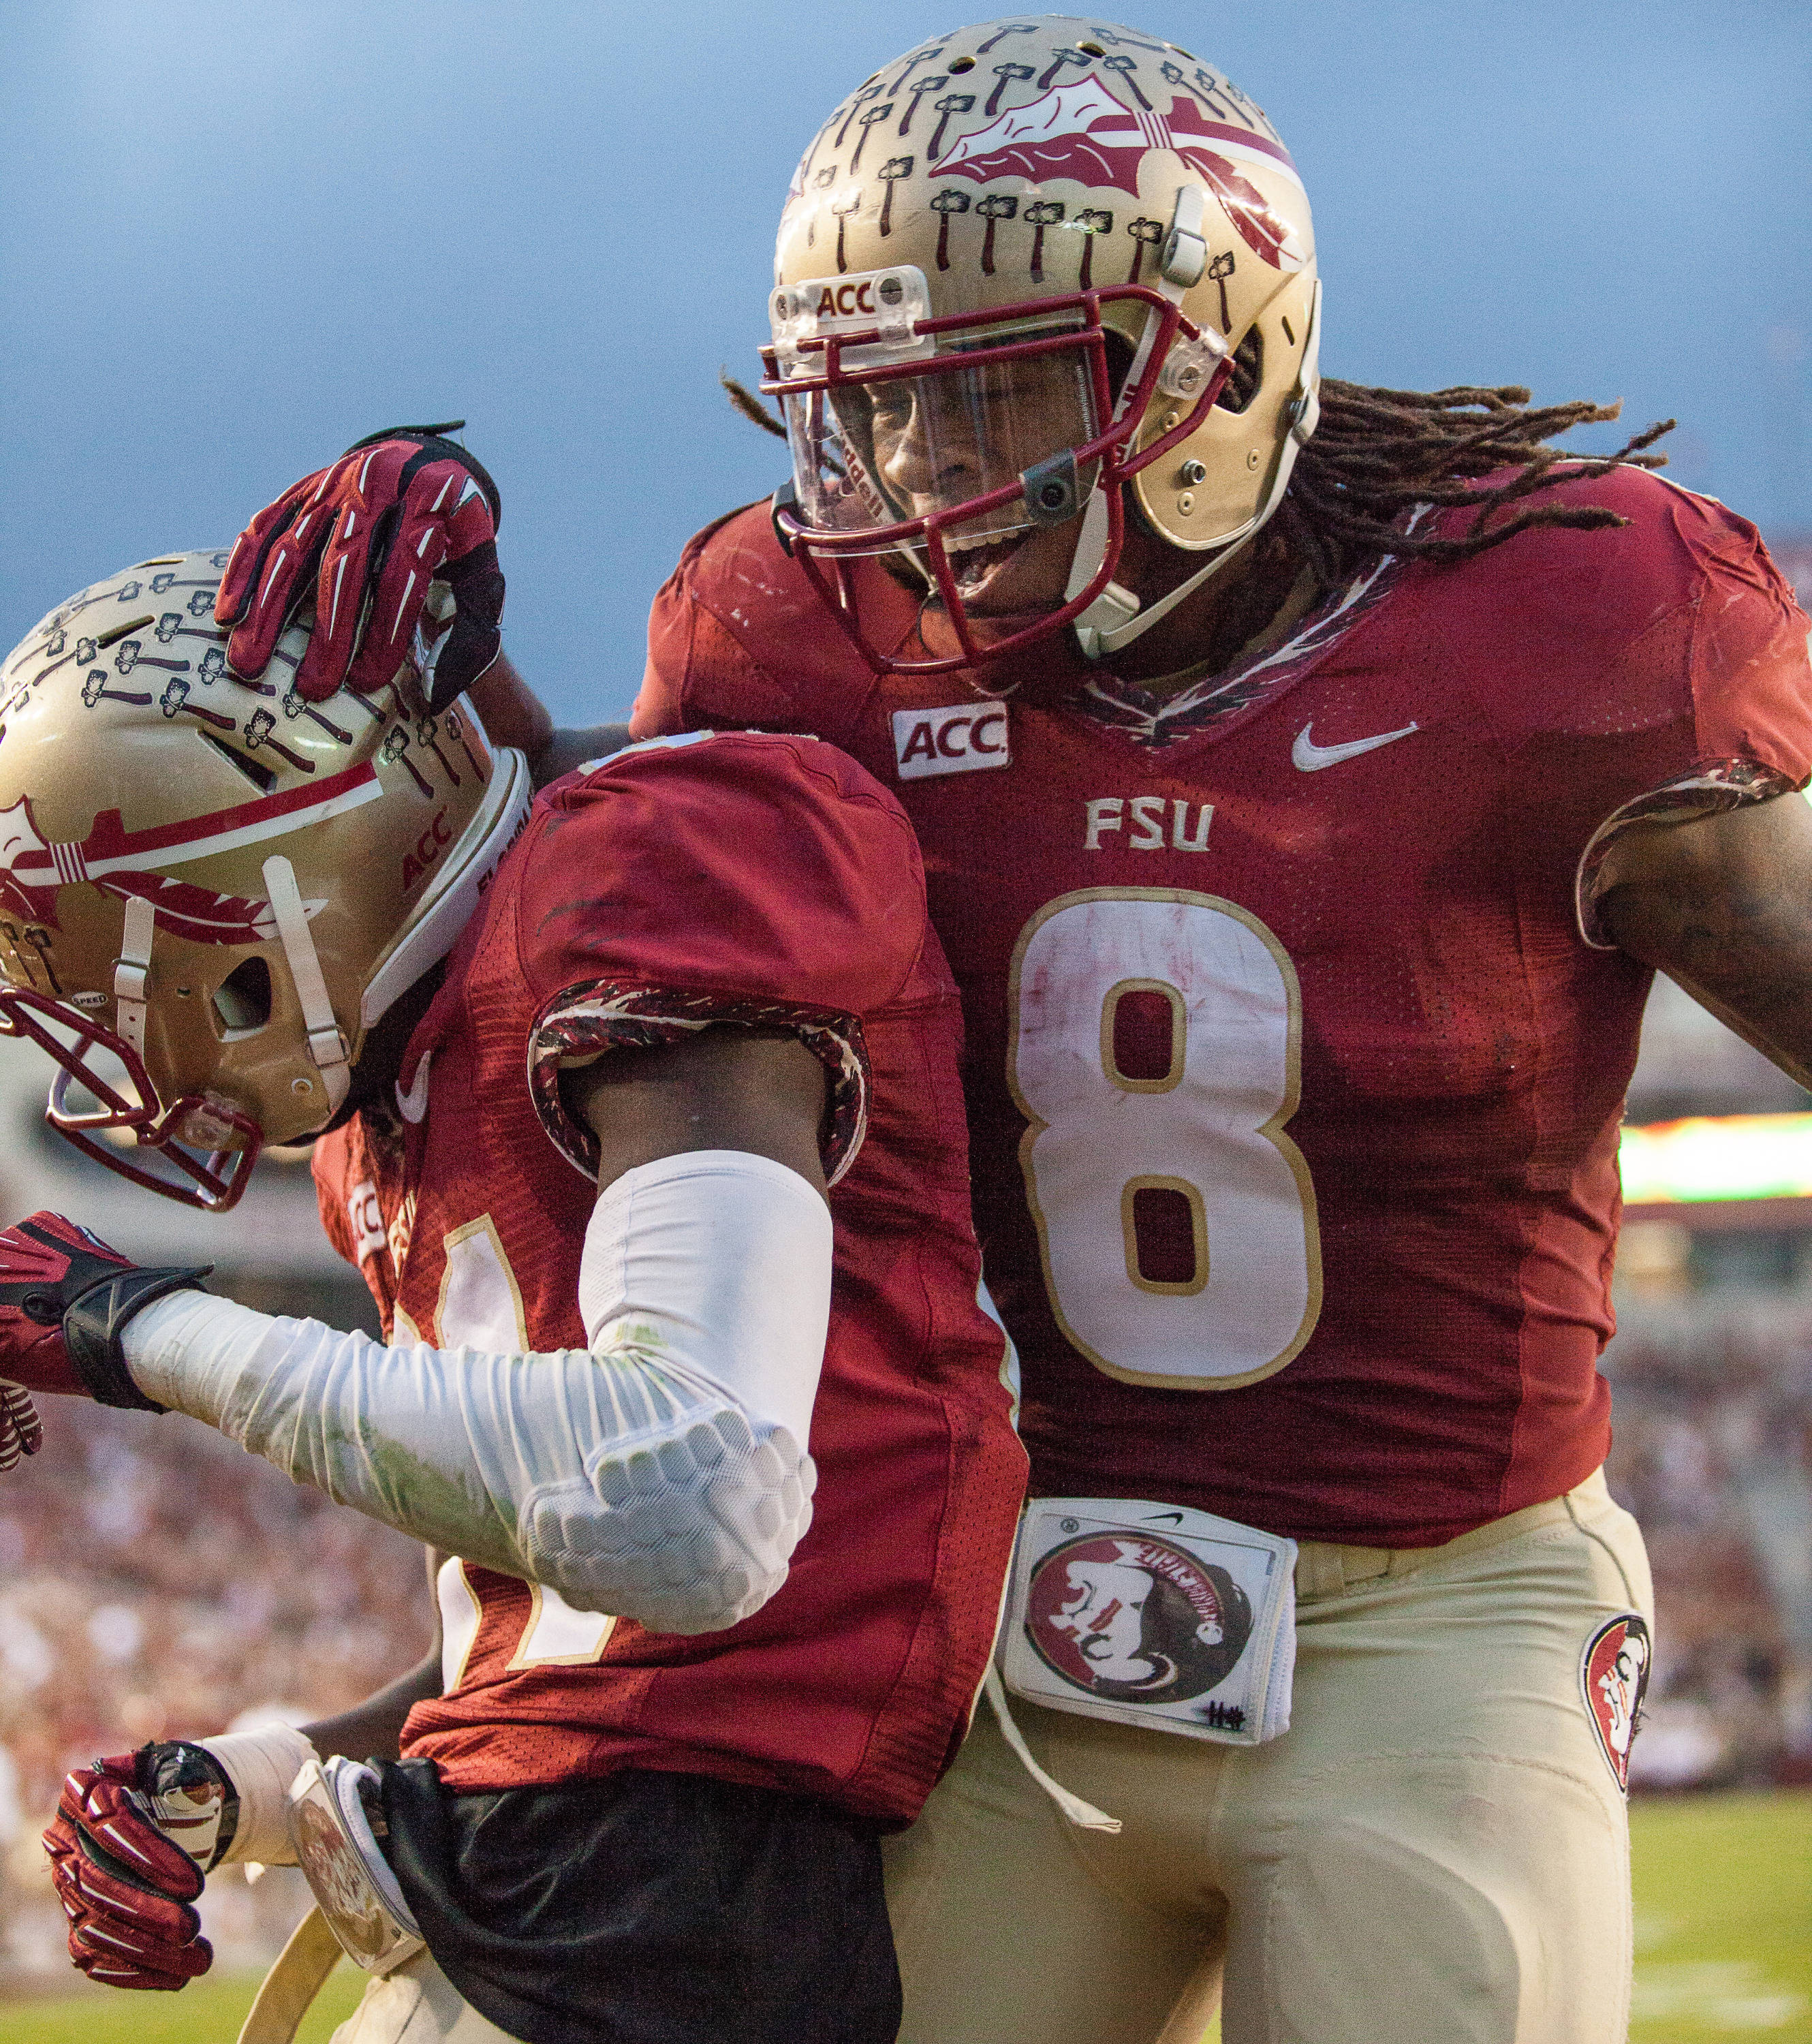 Devonta Freeman (8) and Kenny Shaw (81) celebrate after a touchdown during FSU Football's 80-14 victory over Idaho in Tallahassee, Fla on Saturday, November 23, 2013. Photos by Mike Schwarz.